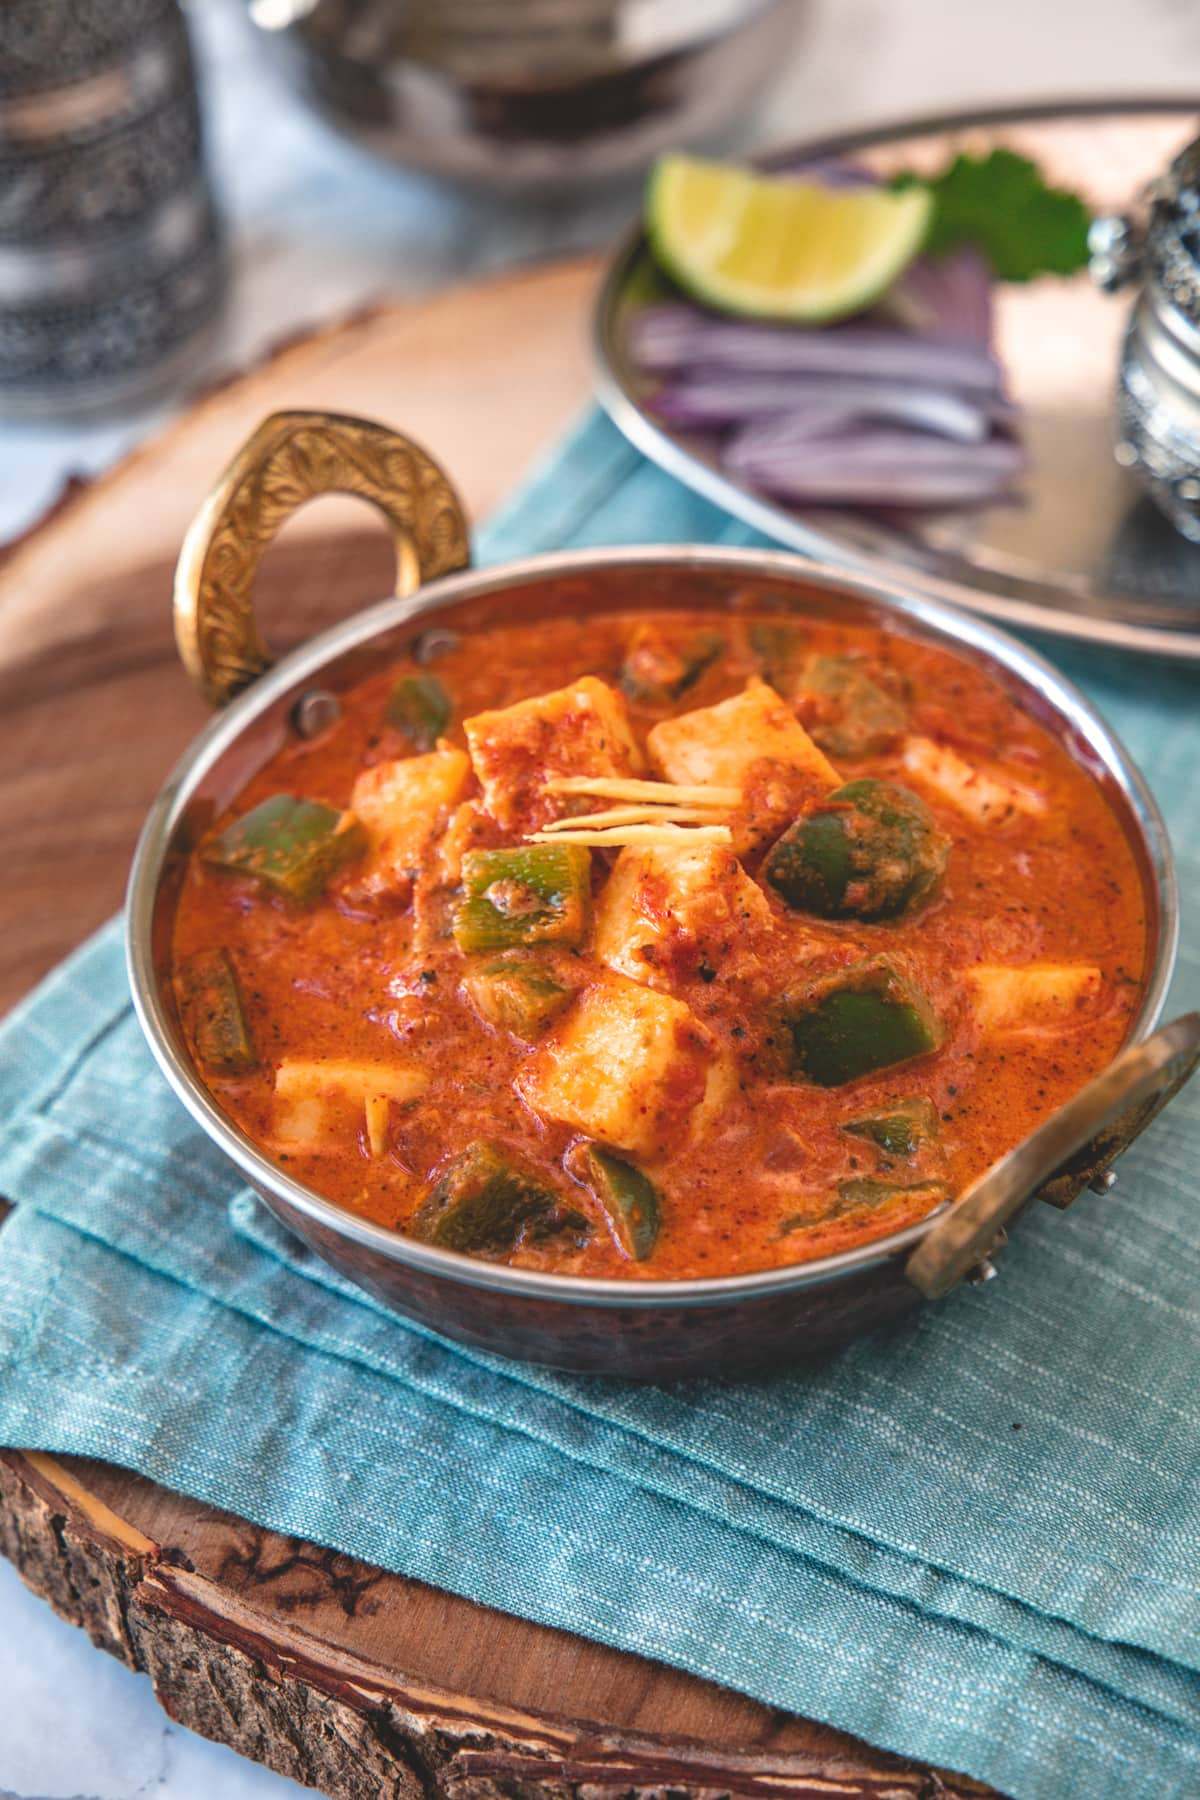 Kadai paneer served in a serving wok with onions, lime on side with napkin underneath.